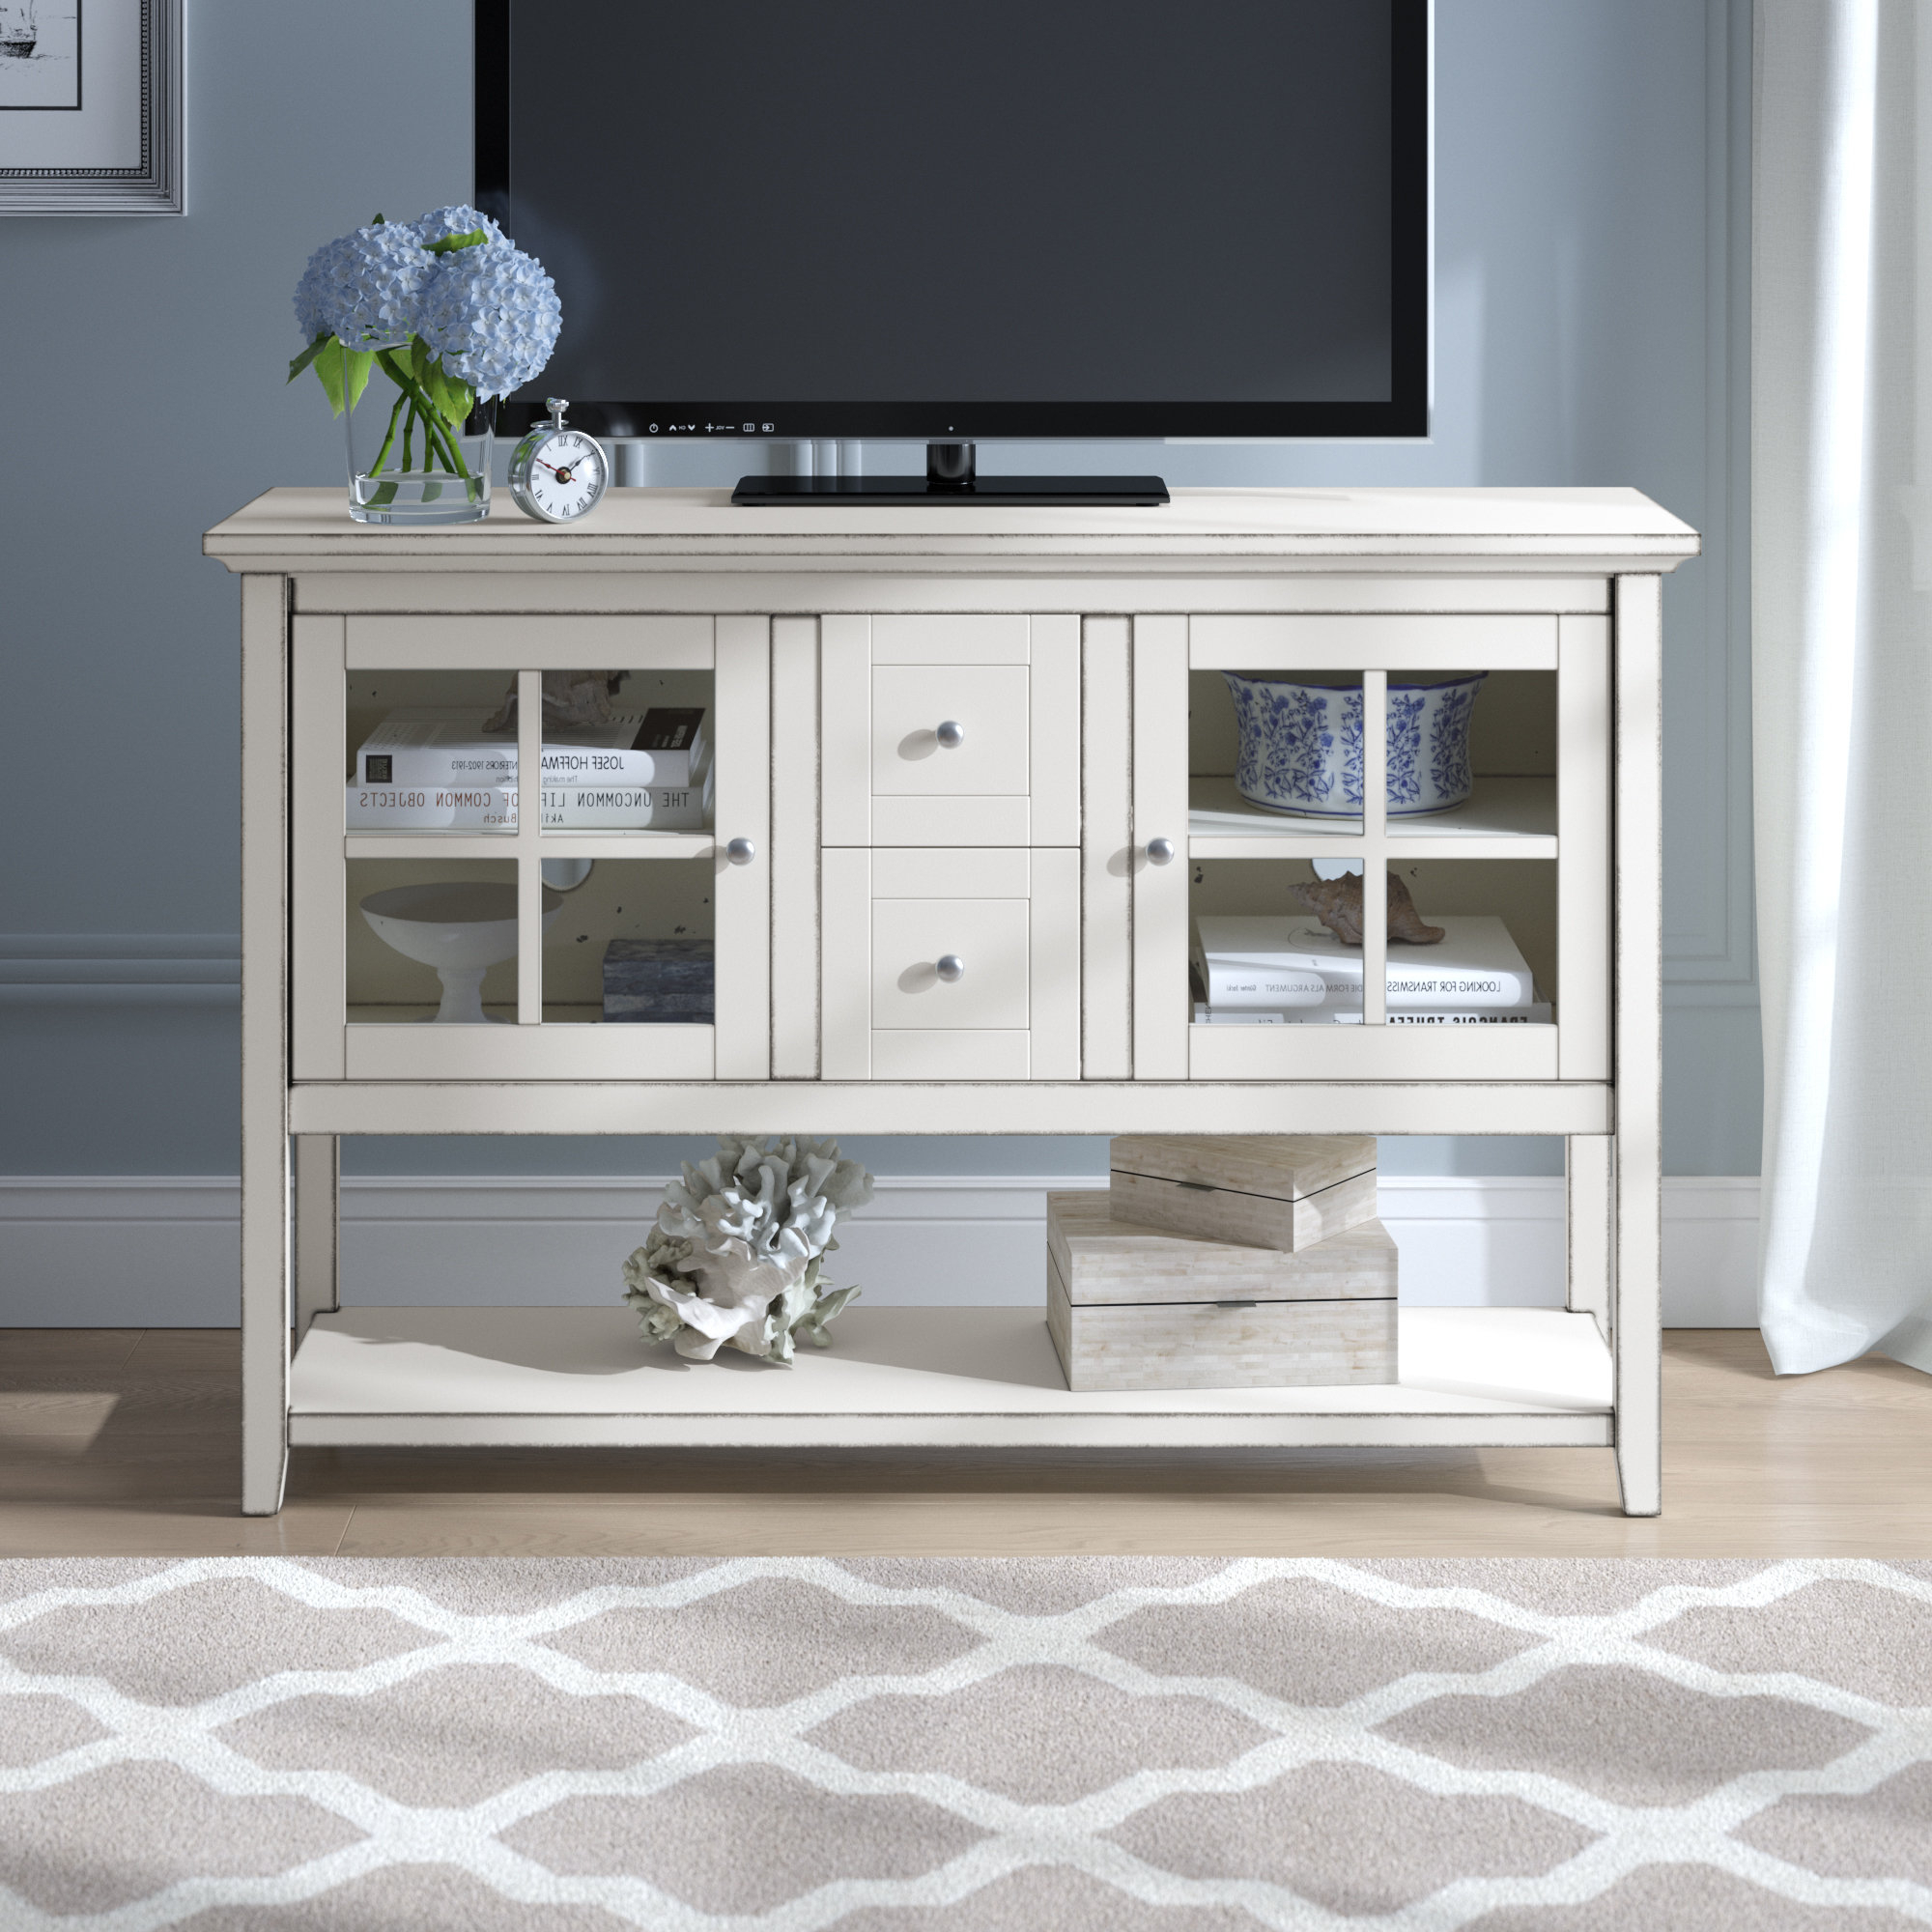 72 Inch Tv Stand | Wayfair Throughout Kenzie 60 Inch Open Display Tv Stands (View 6 of 20)